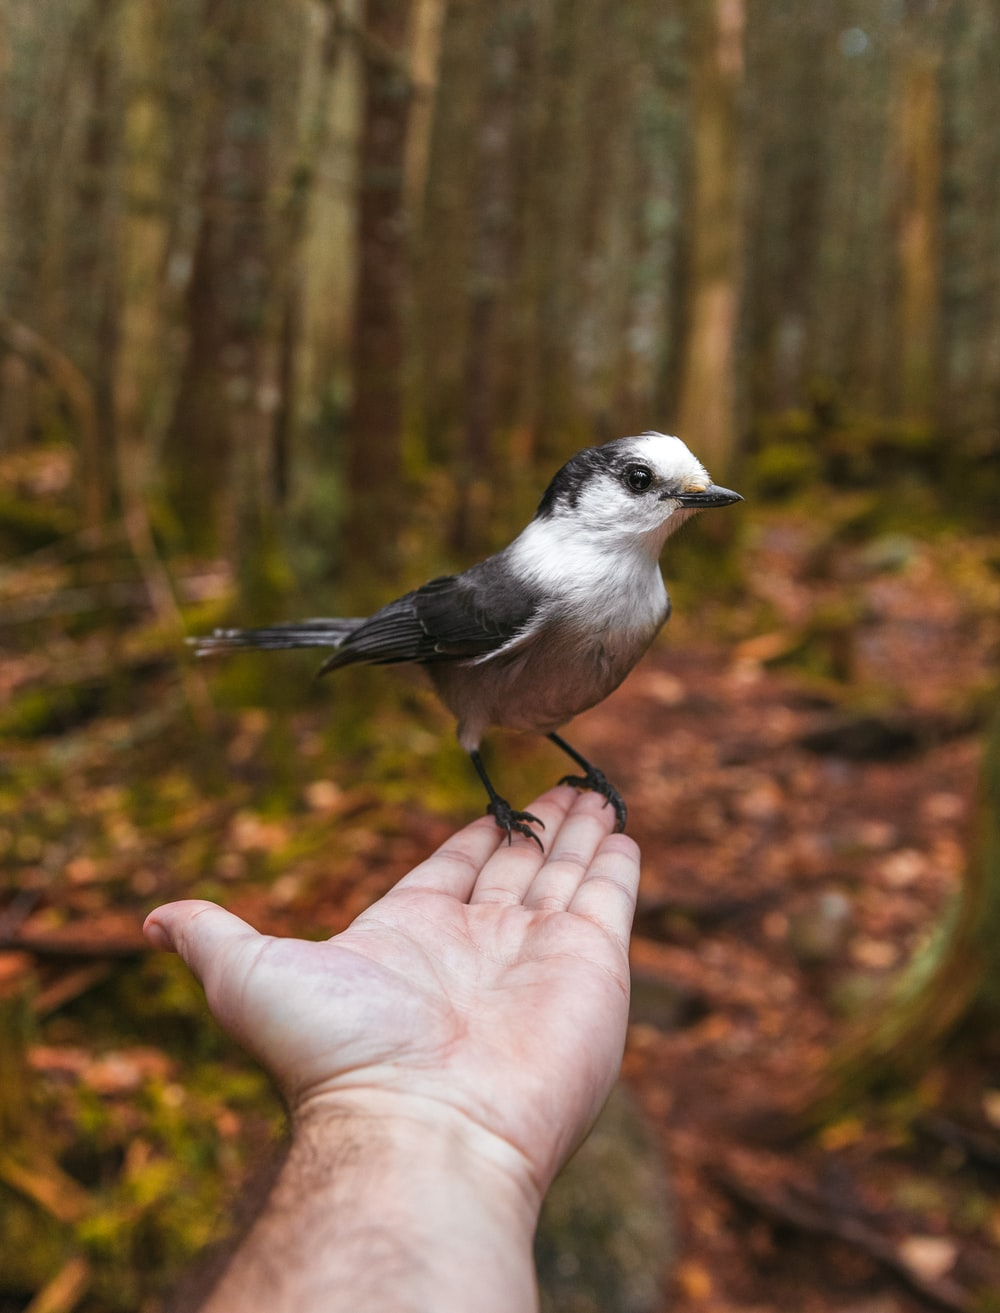 black and white bird on person's hand